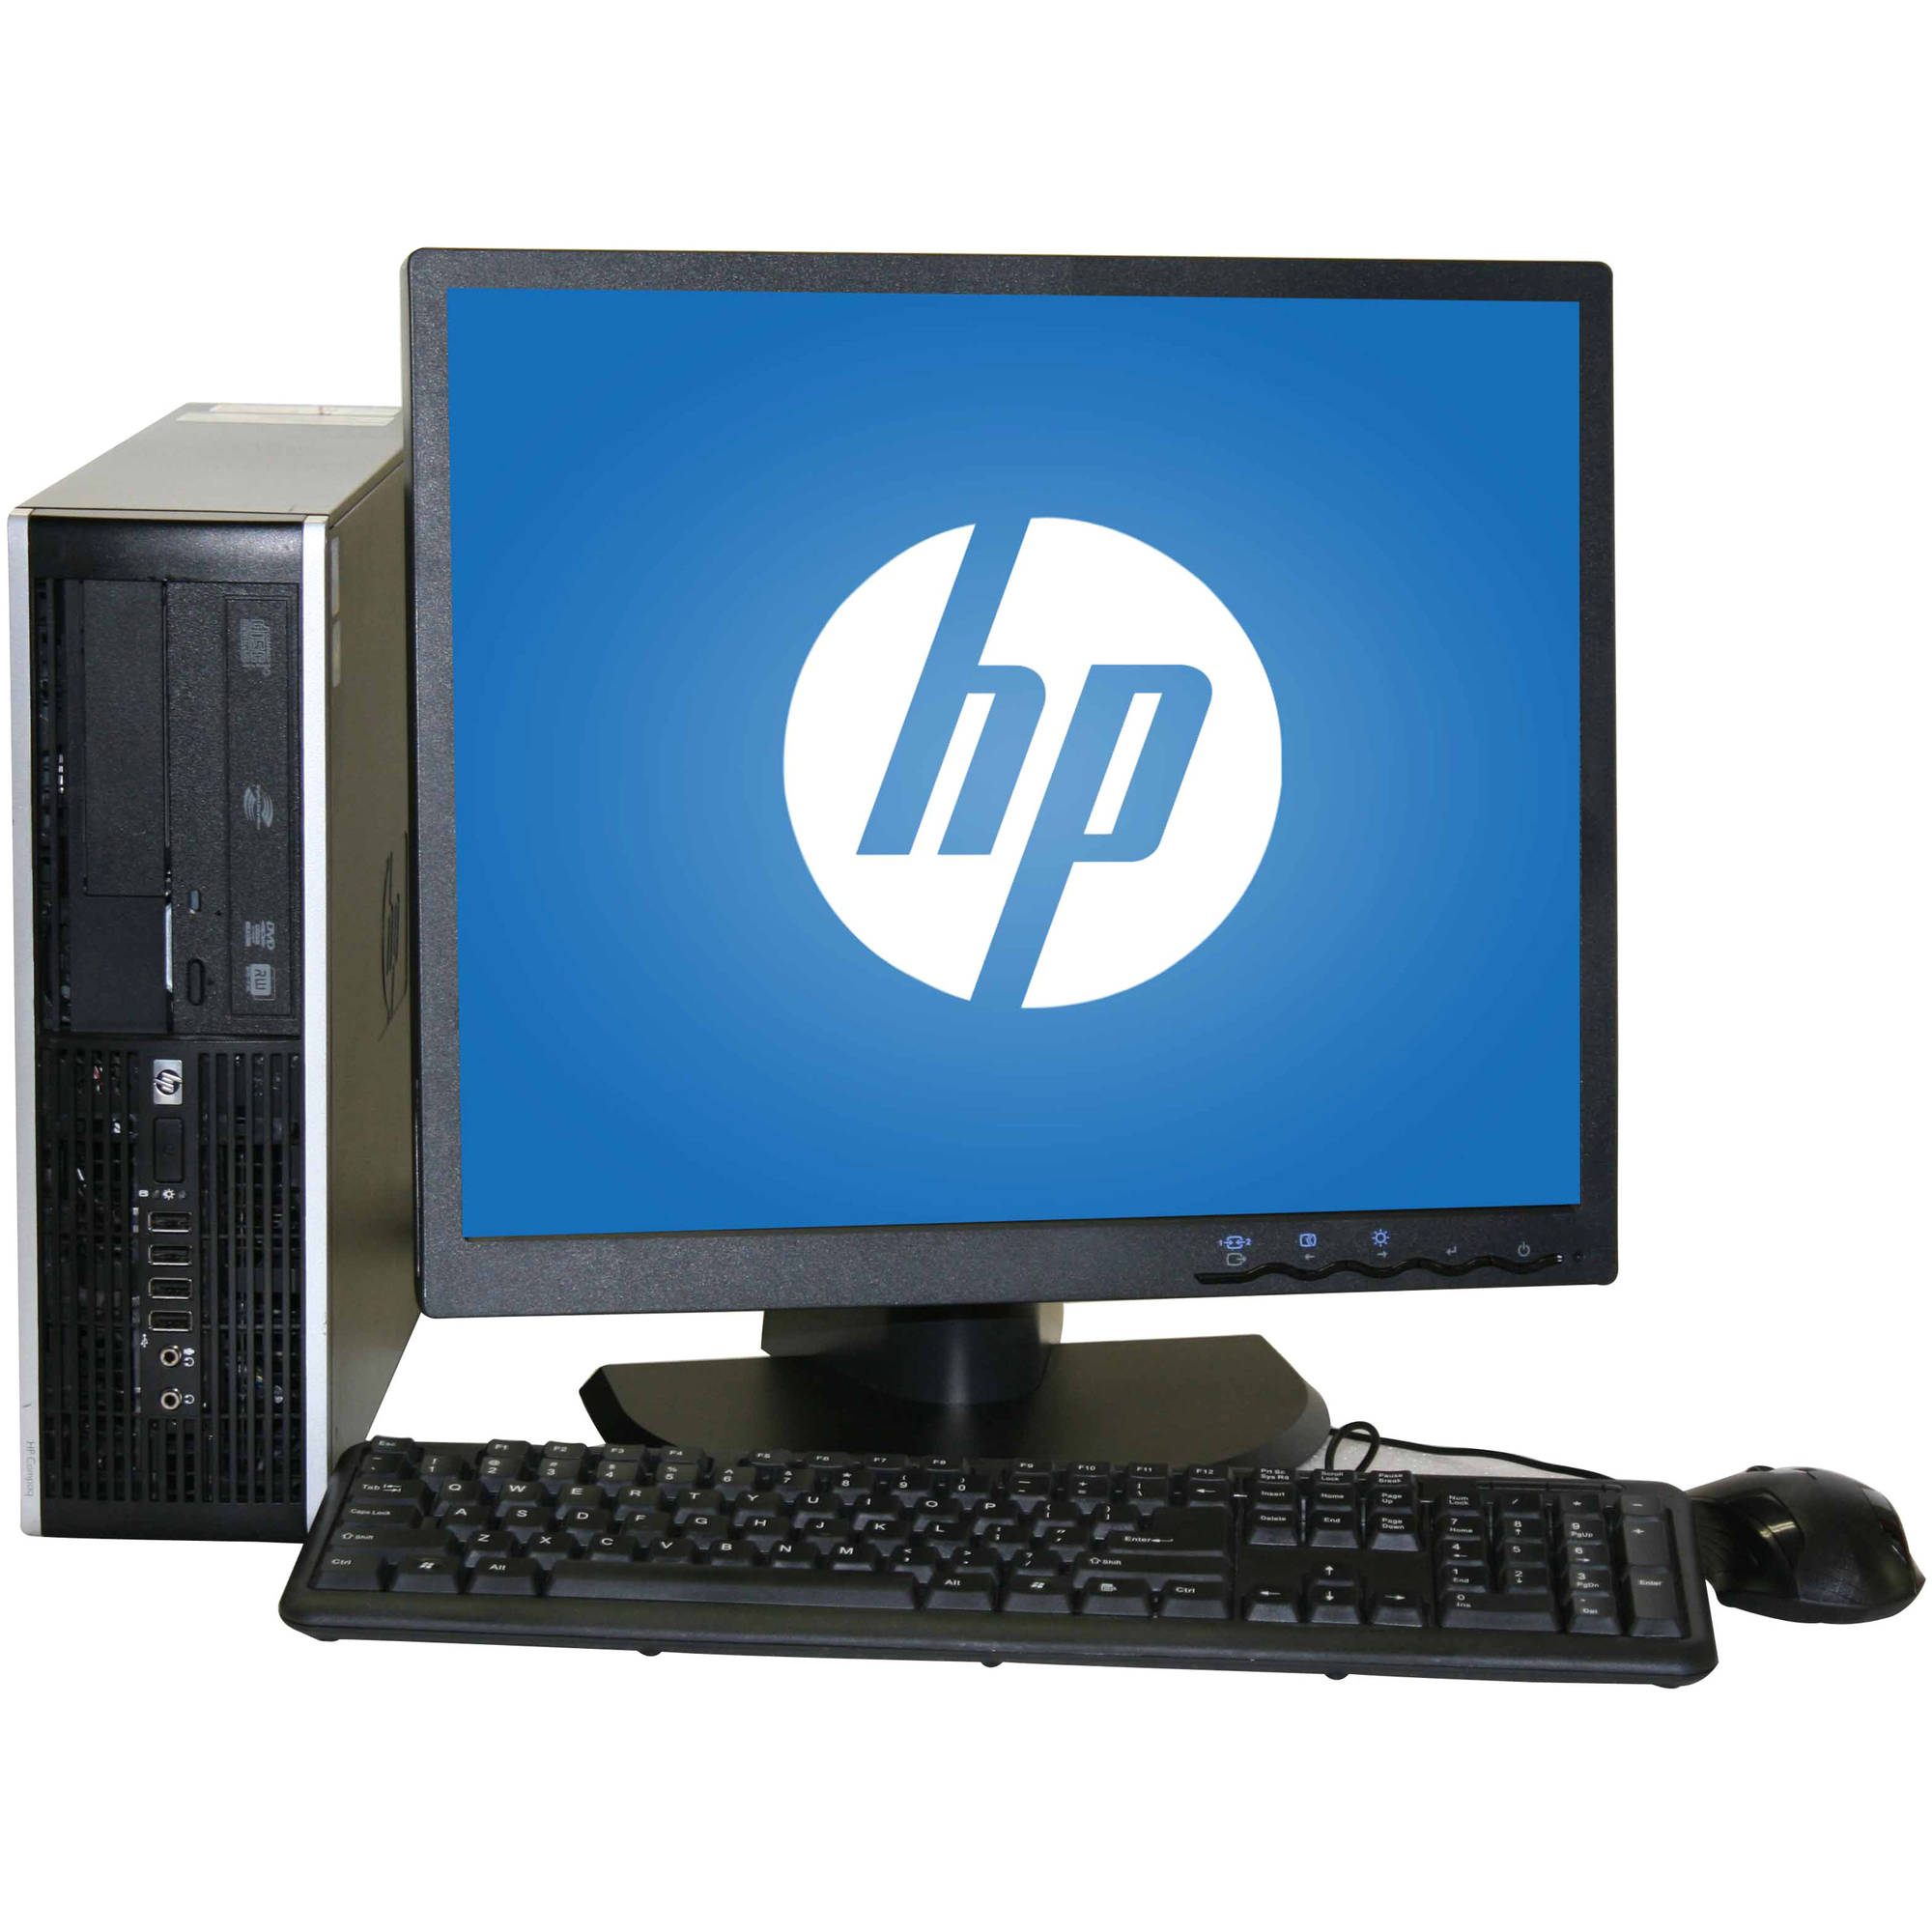 "Refurbished HP 6000 SFF Desktop PC with Intel Core 2 Duo E8400 Processor, 4GB Memory, 19"" LCD Monitor, 1TB Hard Drive and Windows 10 Home"